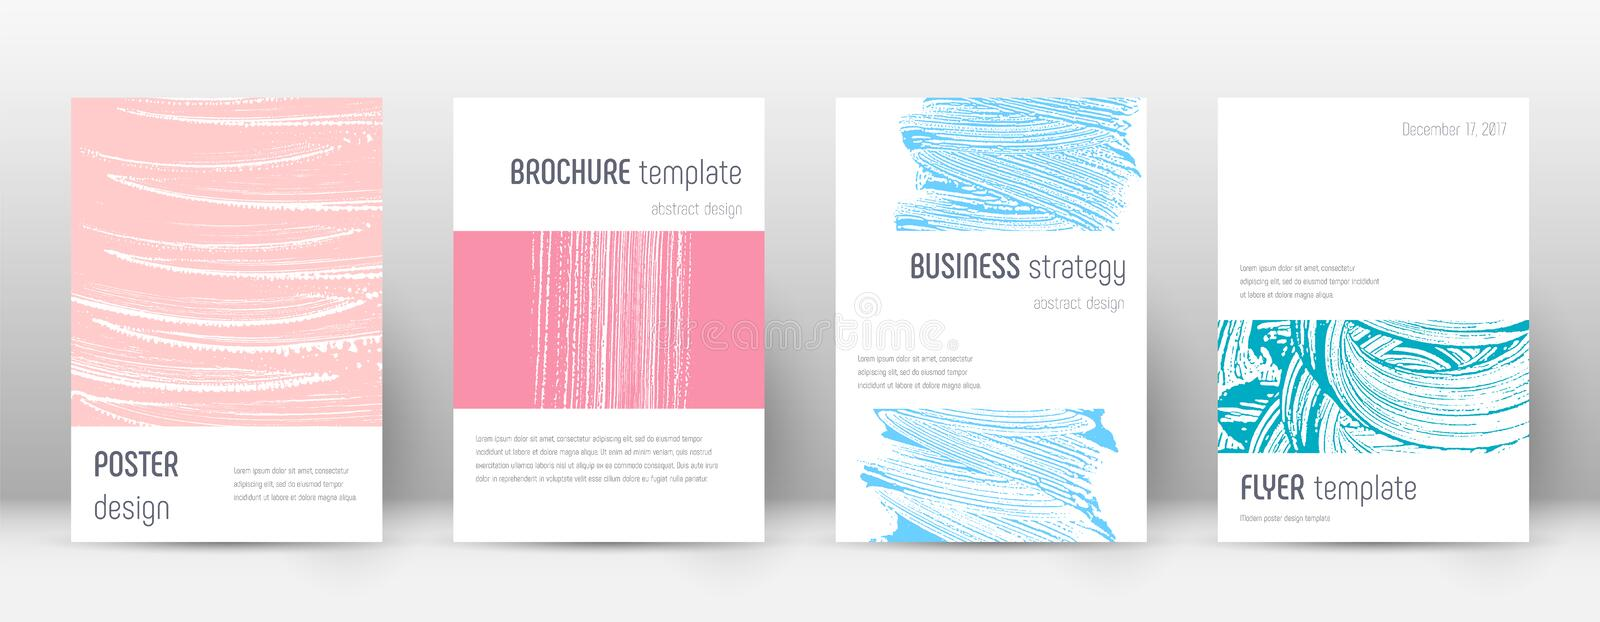 Cover page design template. Minimalistic brochure. Layout. Classic trendy abstract cover page. Pink and blue grunge texture background. Rare poster royalty free illustration